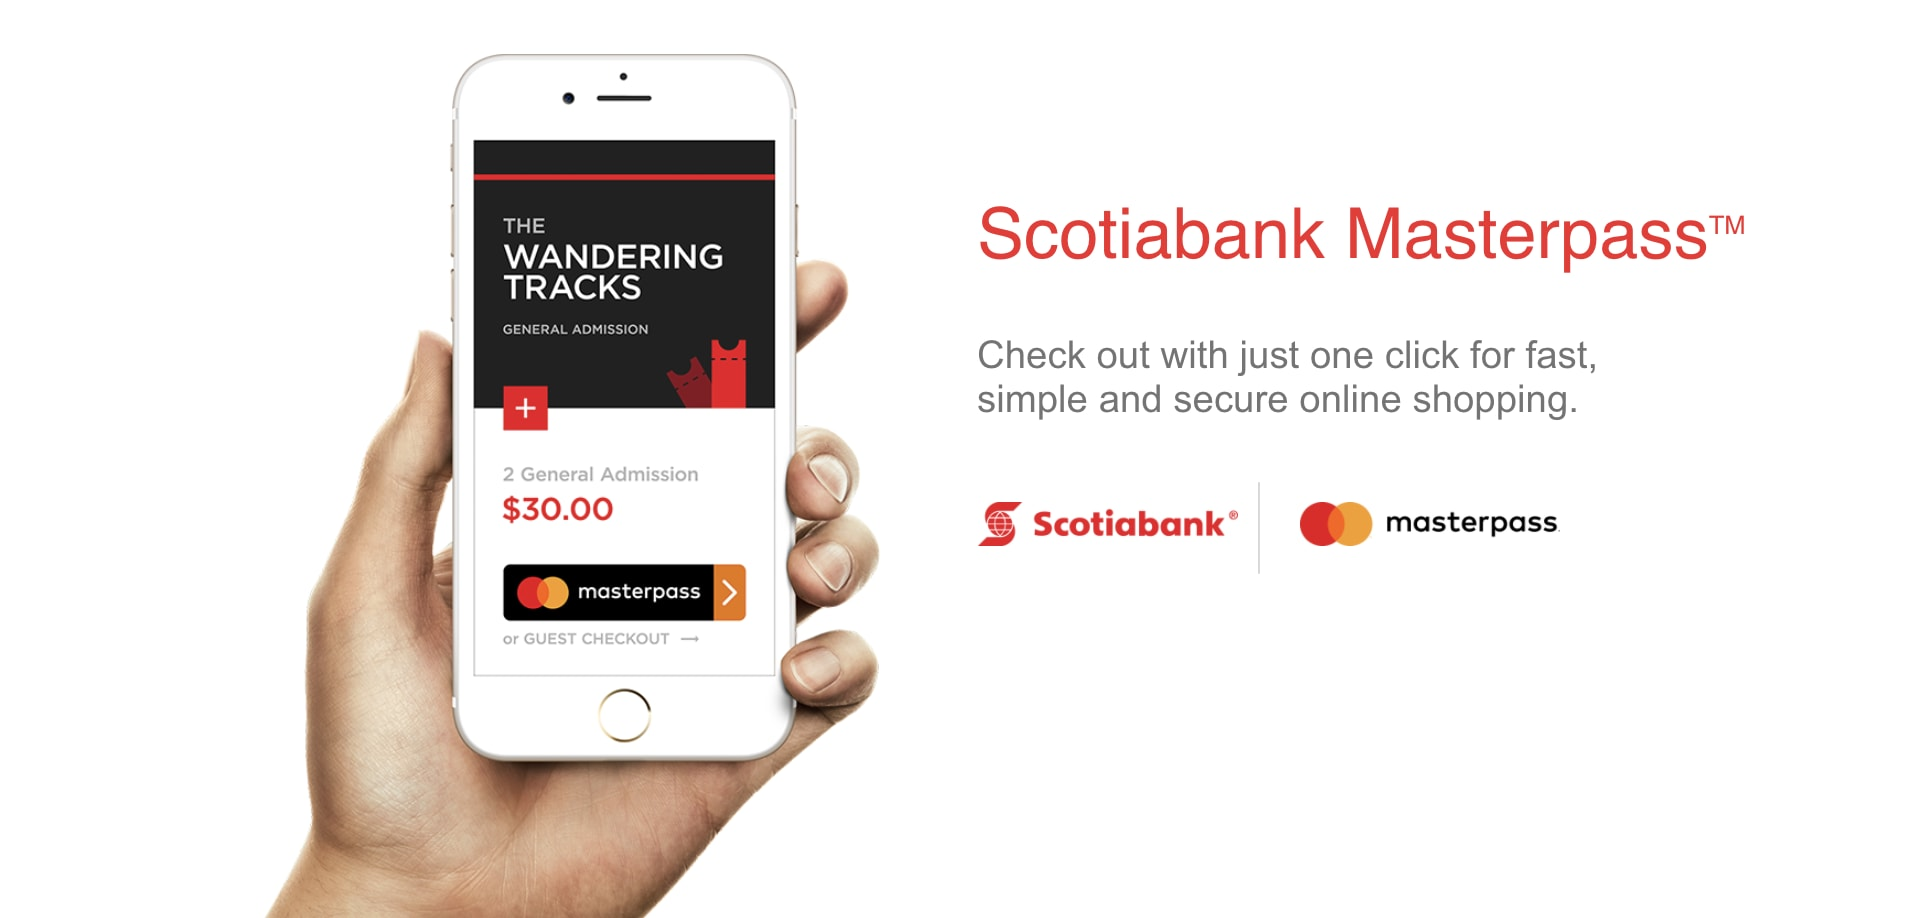 Masterpass Scotiabank